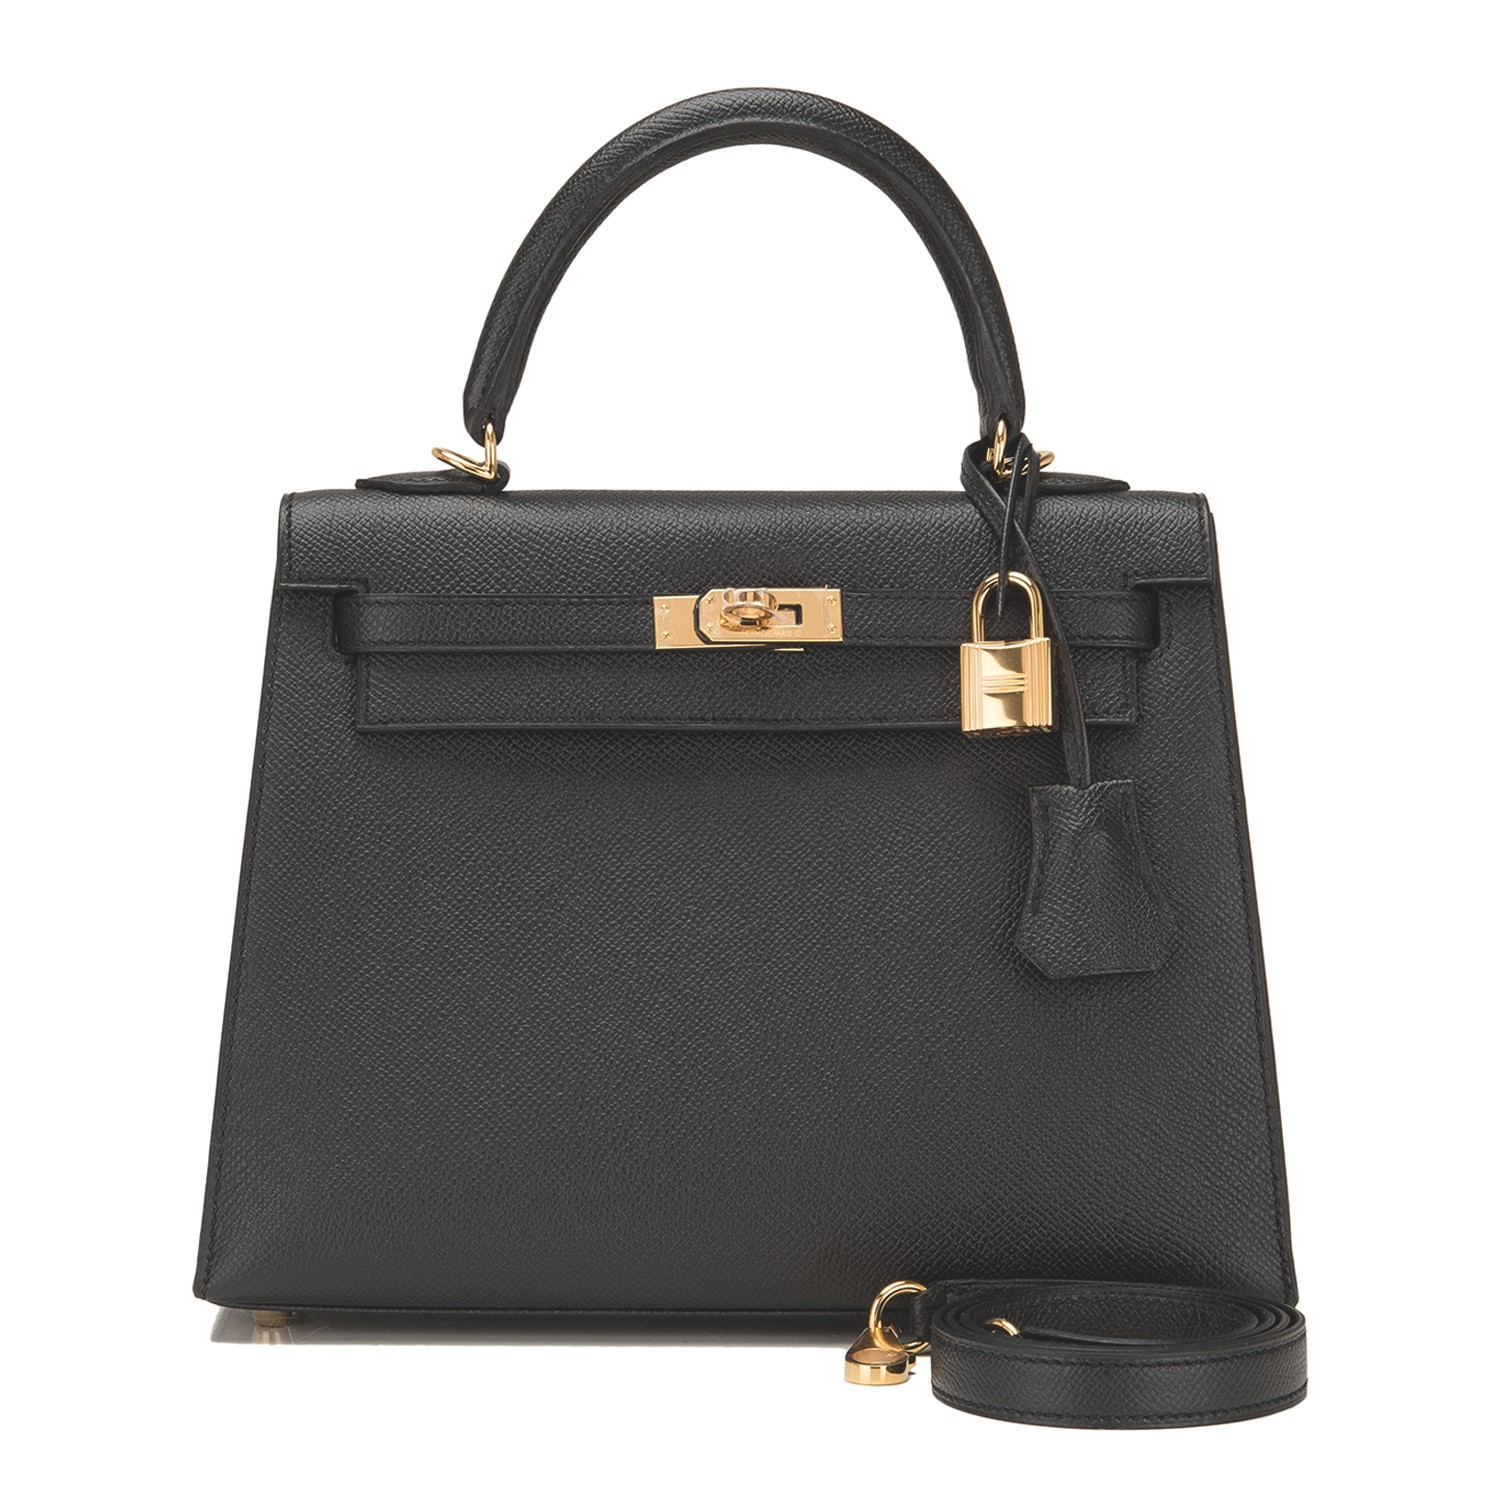 Hermès Black Sellier Kelly 25cm of Epsom Leather with Gold Hardware